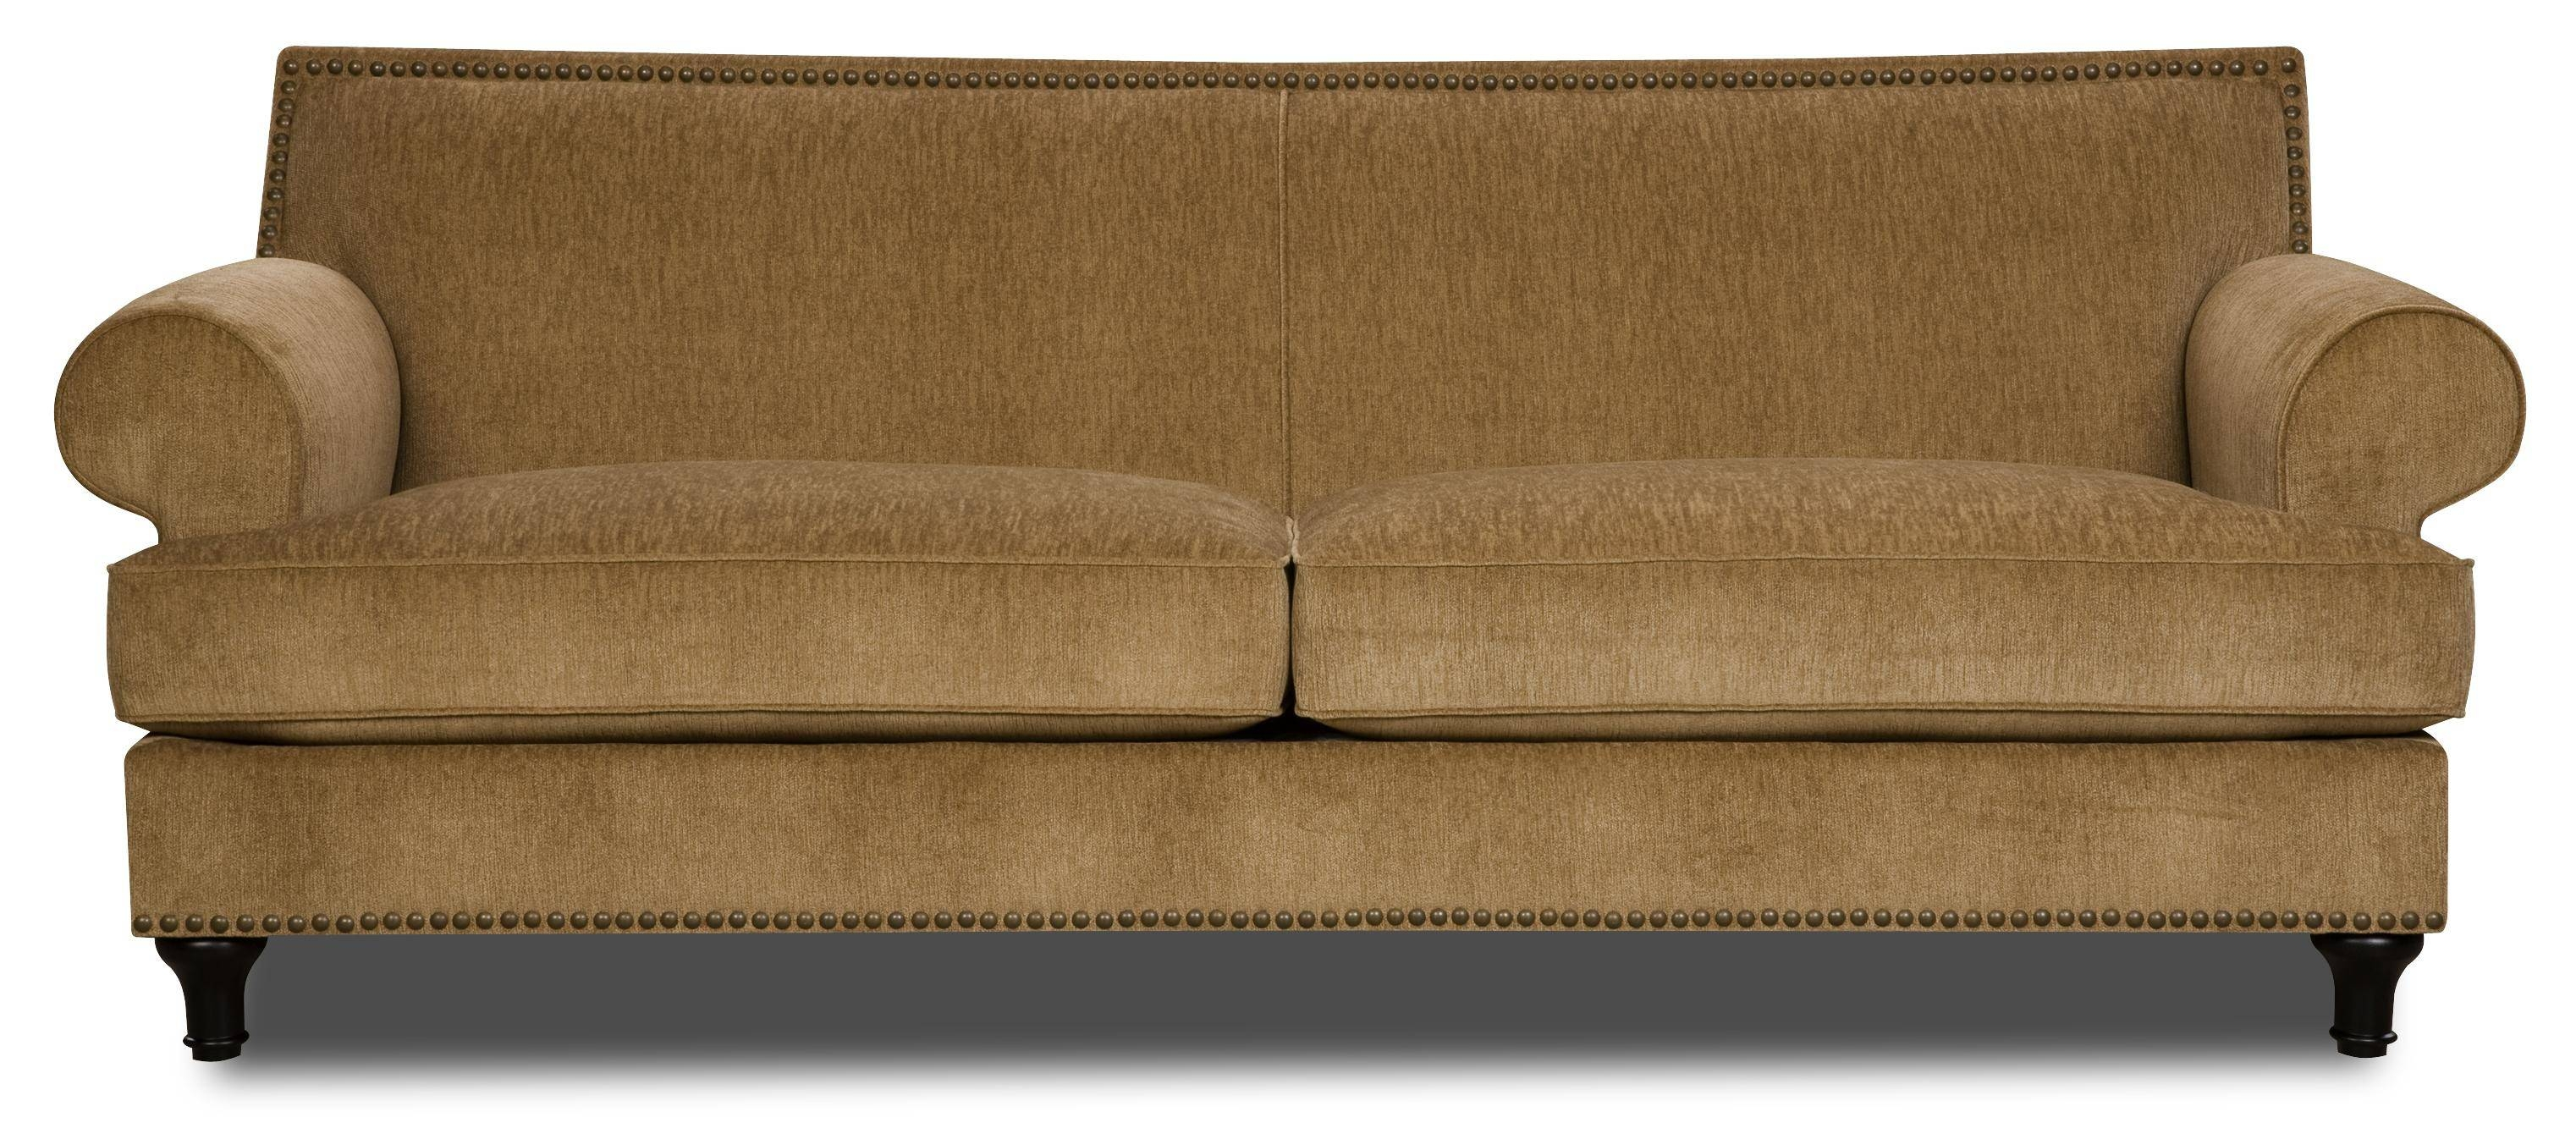 Sofa Tight Back - Bible-Saitama inside Tight Back Sectional Sofas (Image 7 of 15)